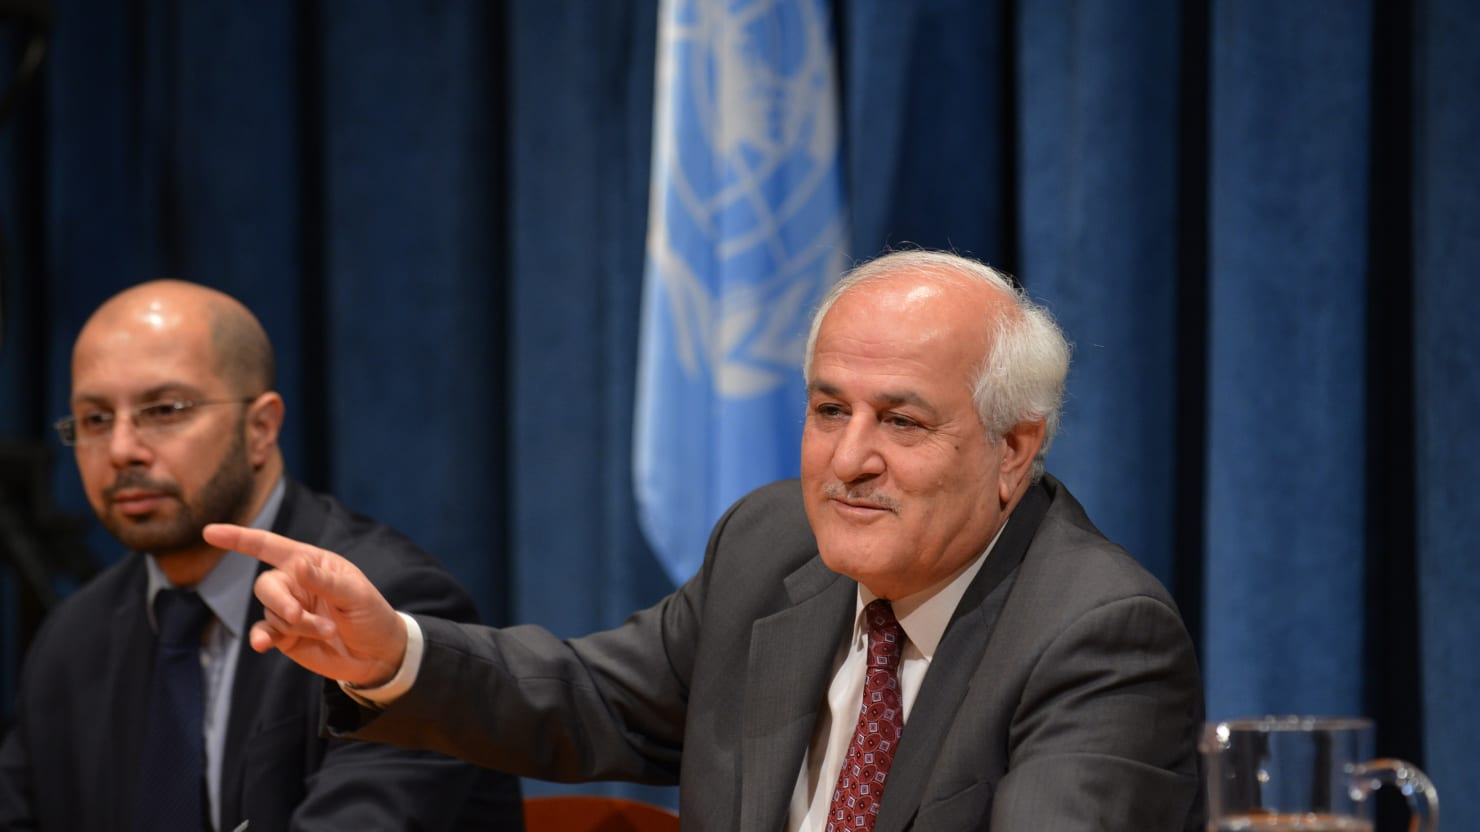 Palestinians Cast a U.N. Vote, Move Closer to State Recognition